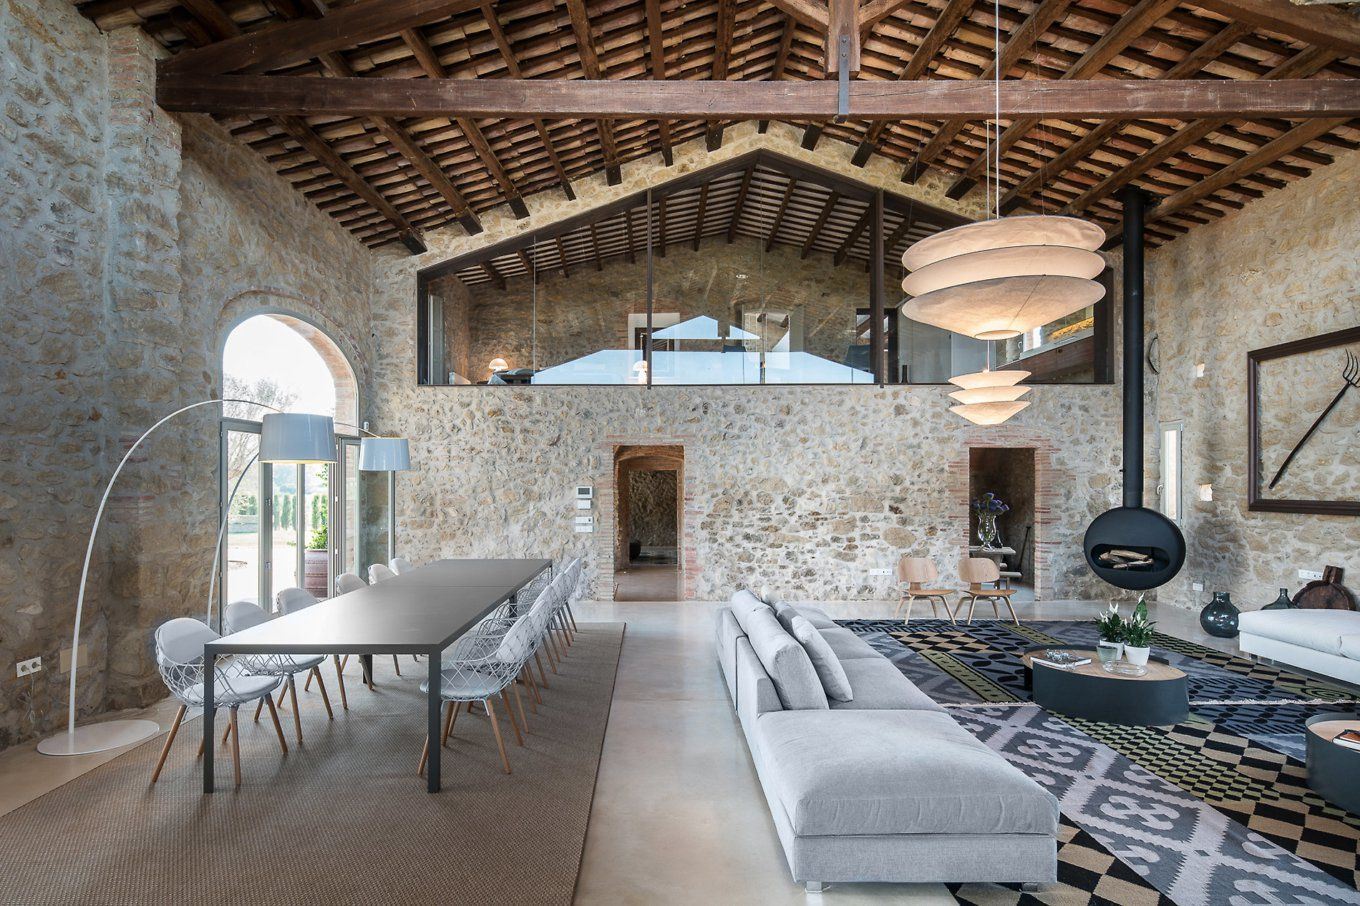 A great example of an ideal restoration, this farmhouse in Girona, Spain, was completed by Barcelona-based architect Gloria Duran Torrellas in 2017. Located in the picturesque medieval village of Pals, the house dates back to the 1850s. The practice maintained the numerous original features from that era intact, celebrating history and tradition while creating a …